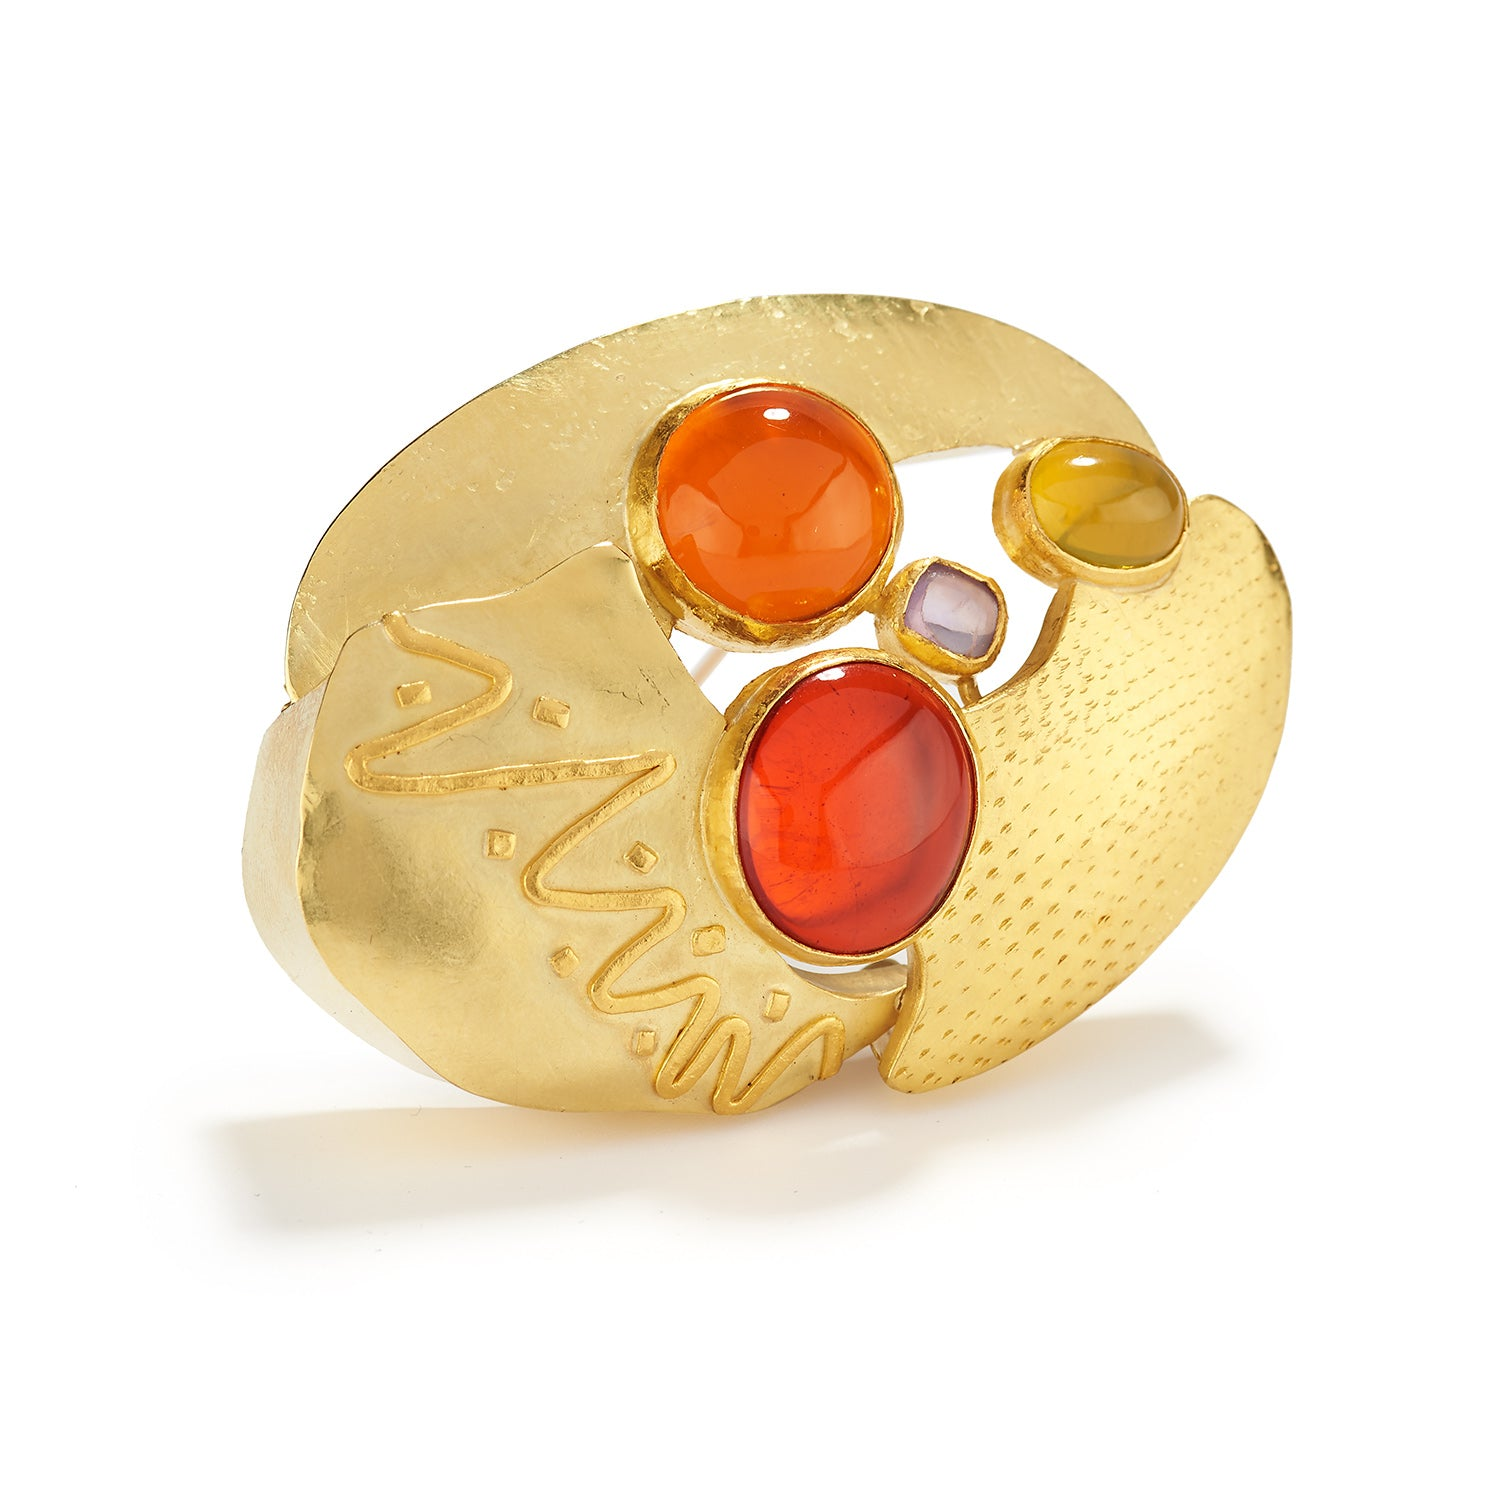 Fire Opal Brooch